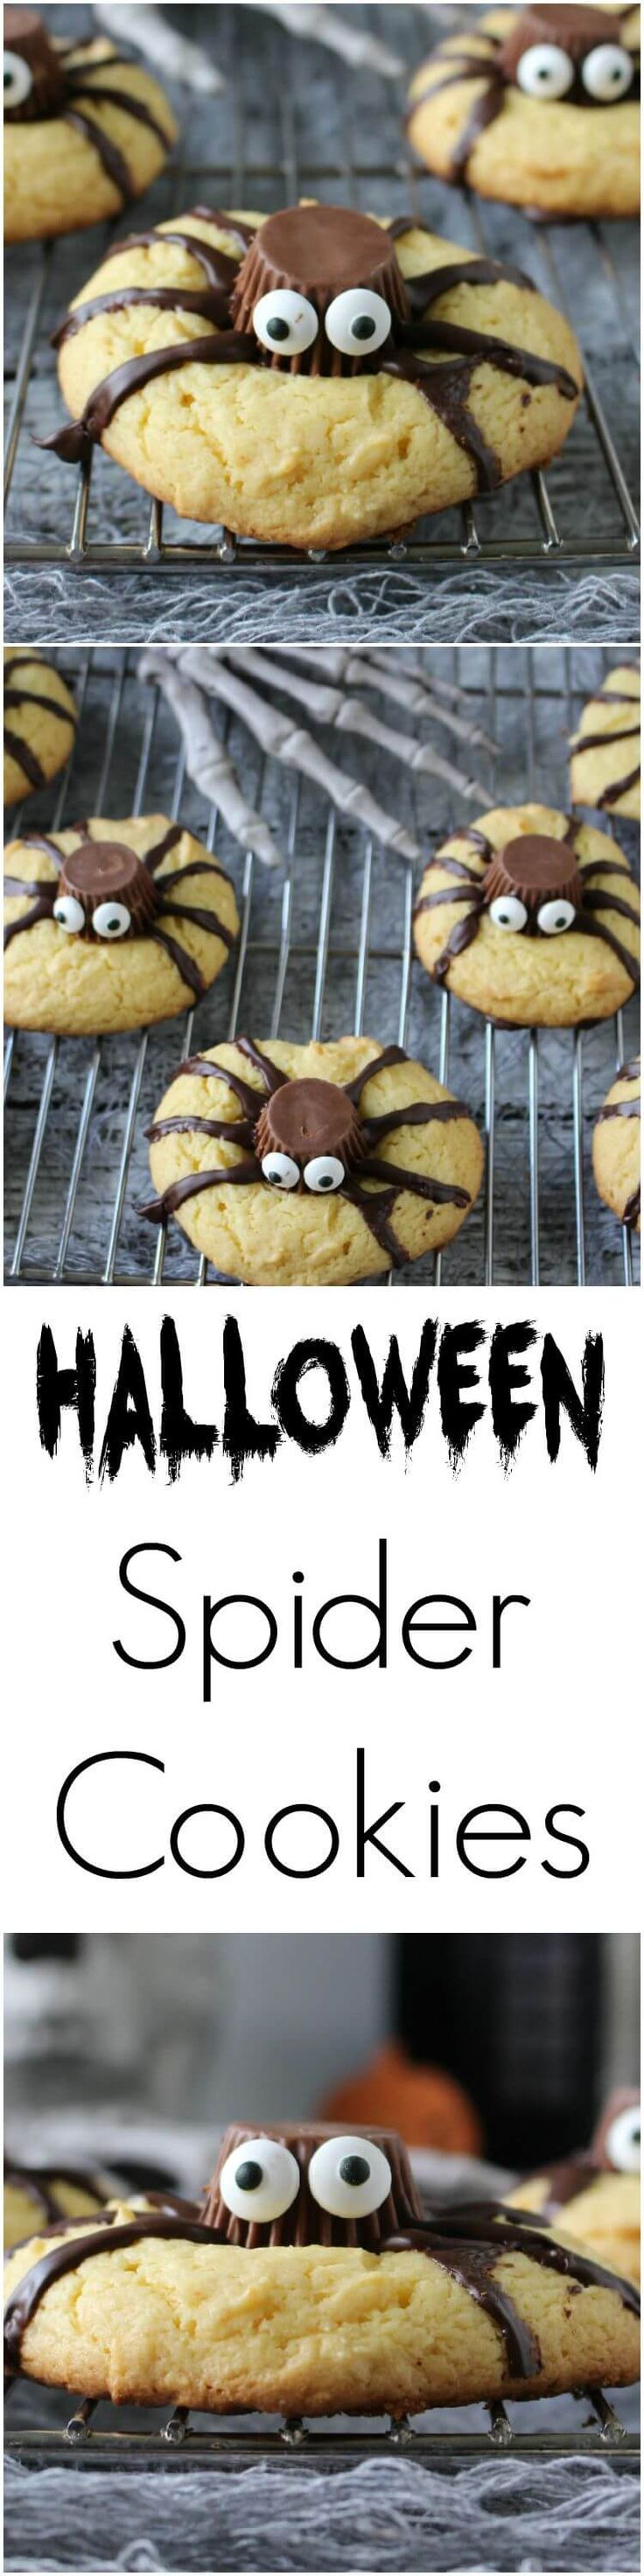 Easy Halloween Spider Cookies - an easy and delicious Halloween dessert